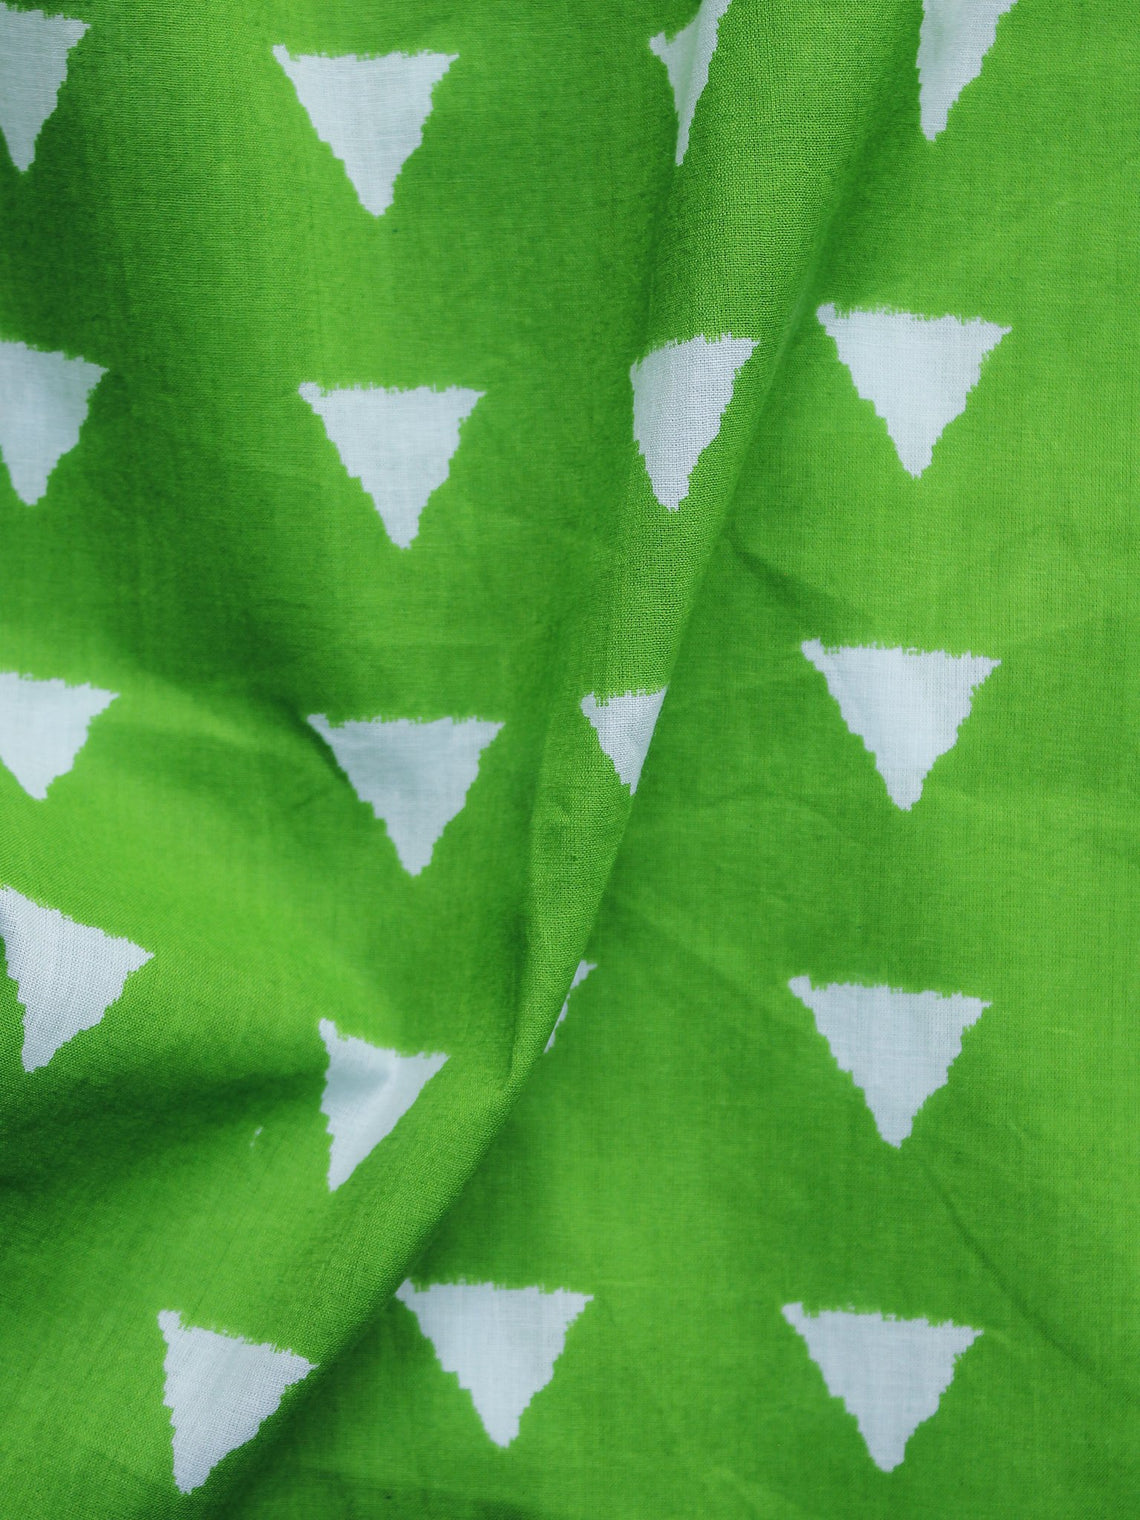 Chartreuse Green Ivory Hand Block Printed Cotton Fabric Per Meter - F001F1009